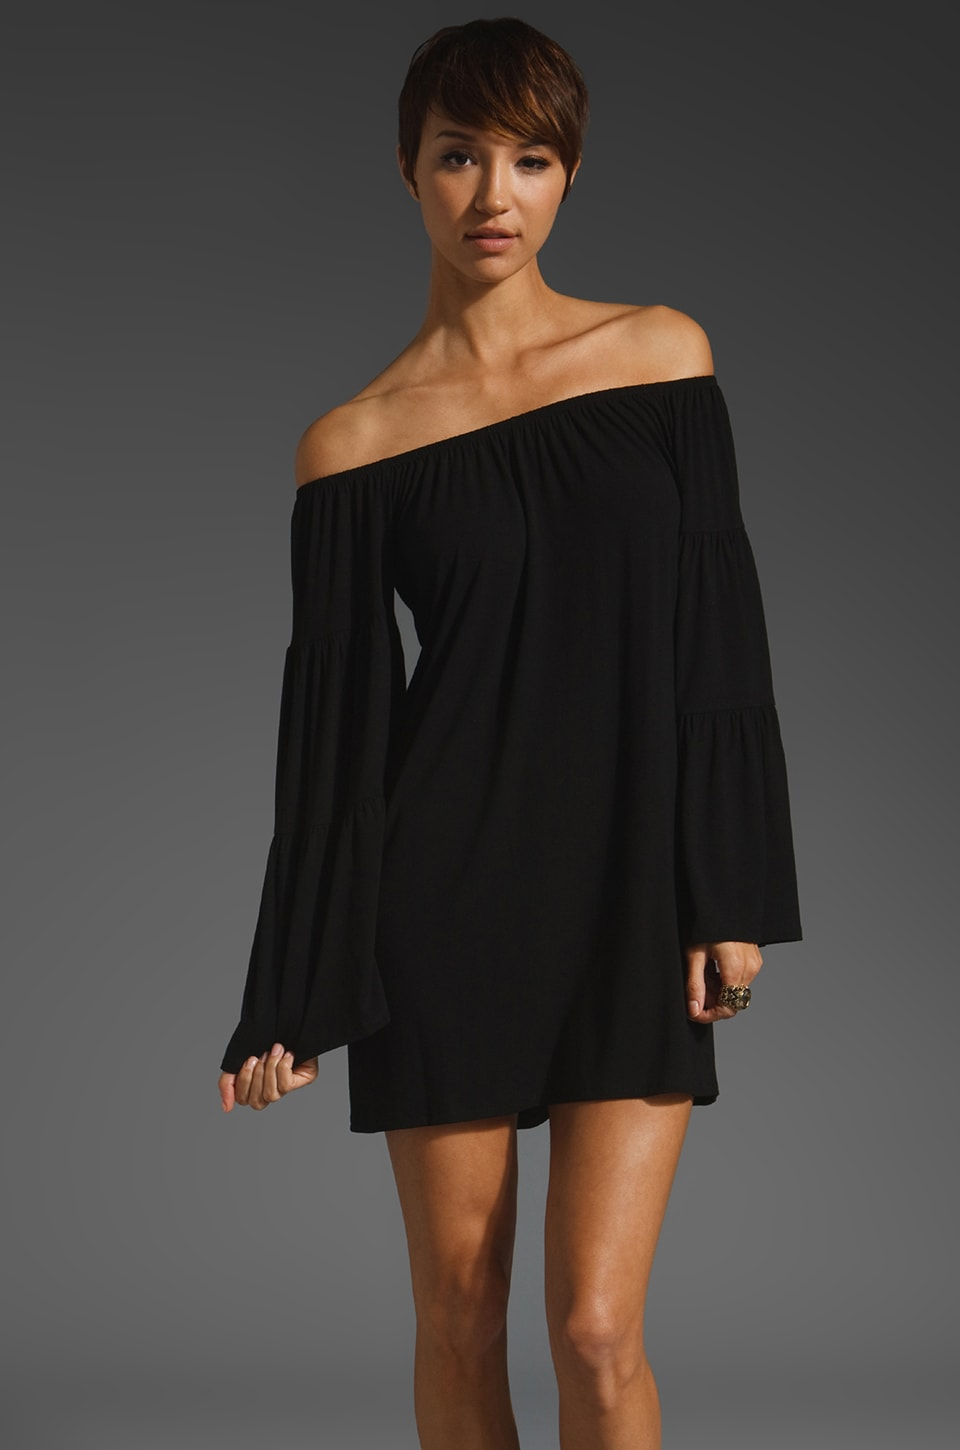 James & Joy Jenna Off Shoulder Dress in Black